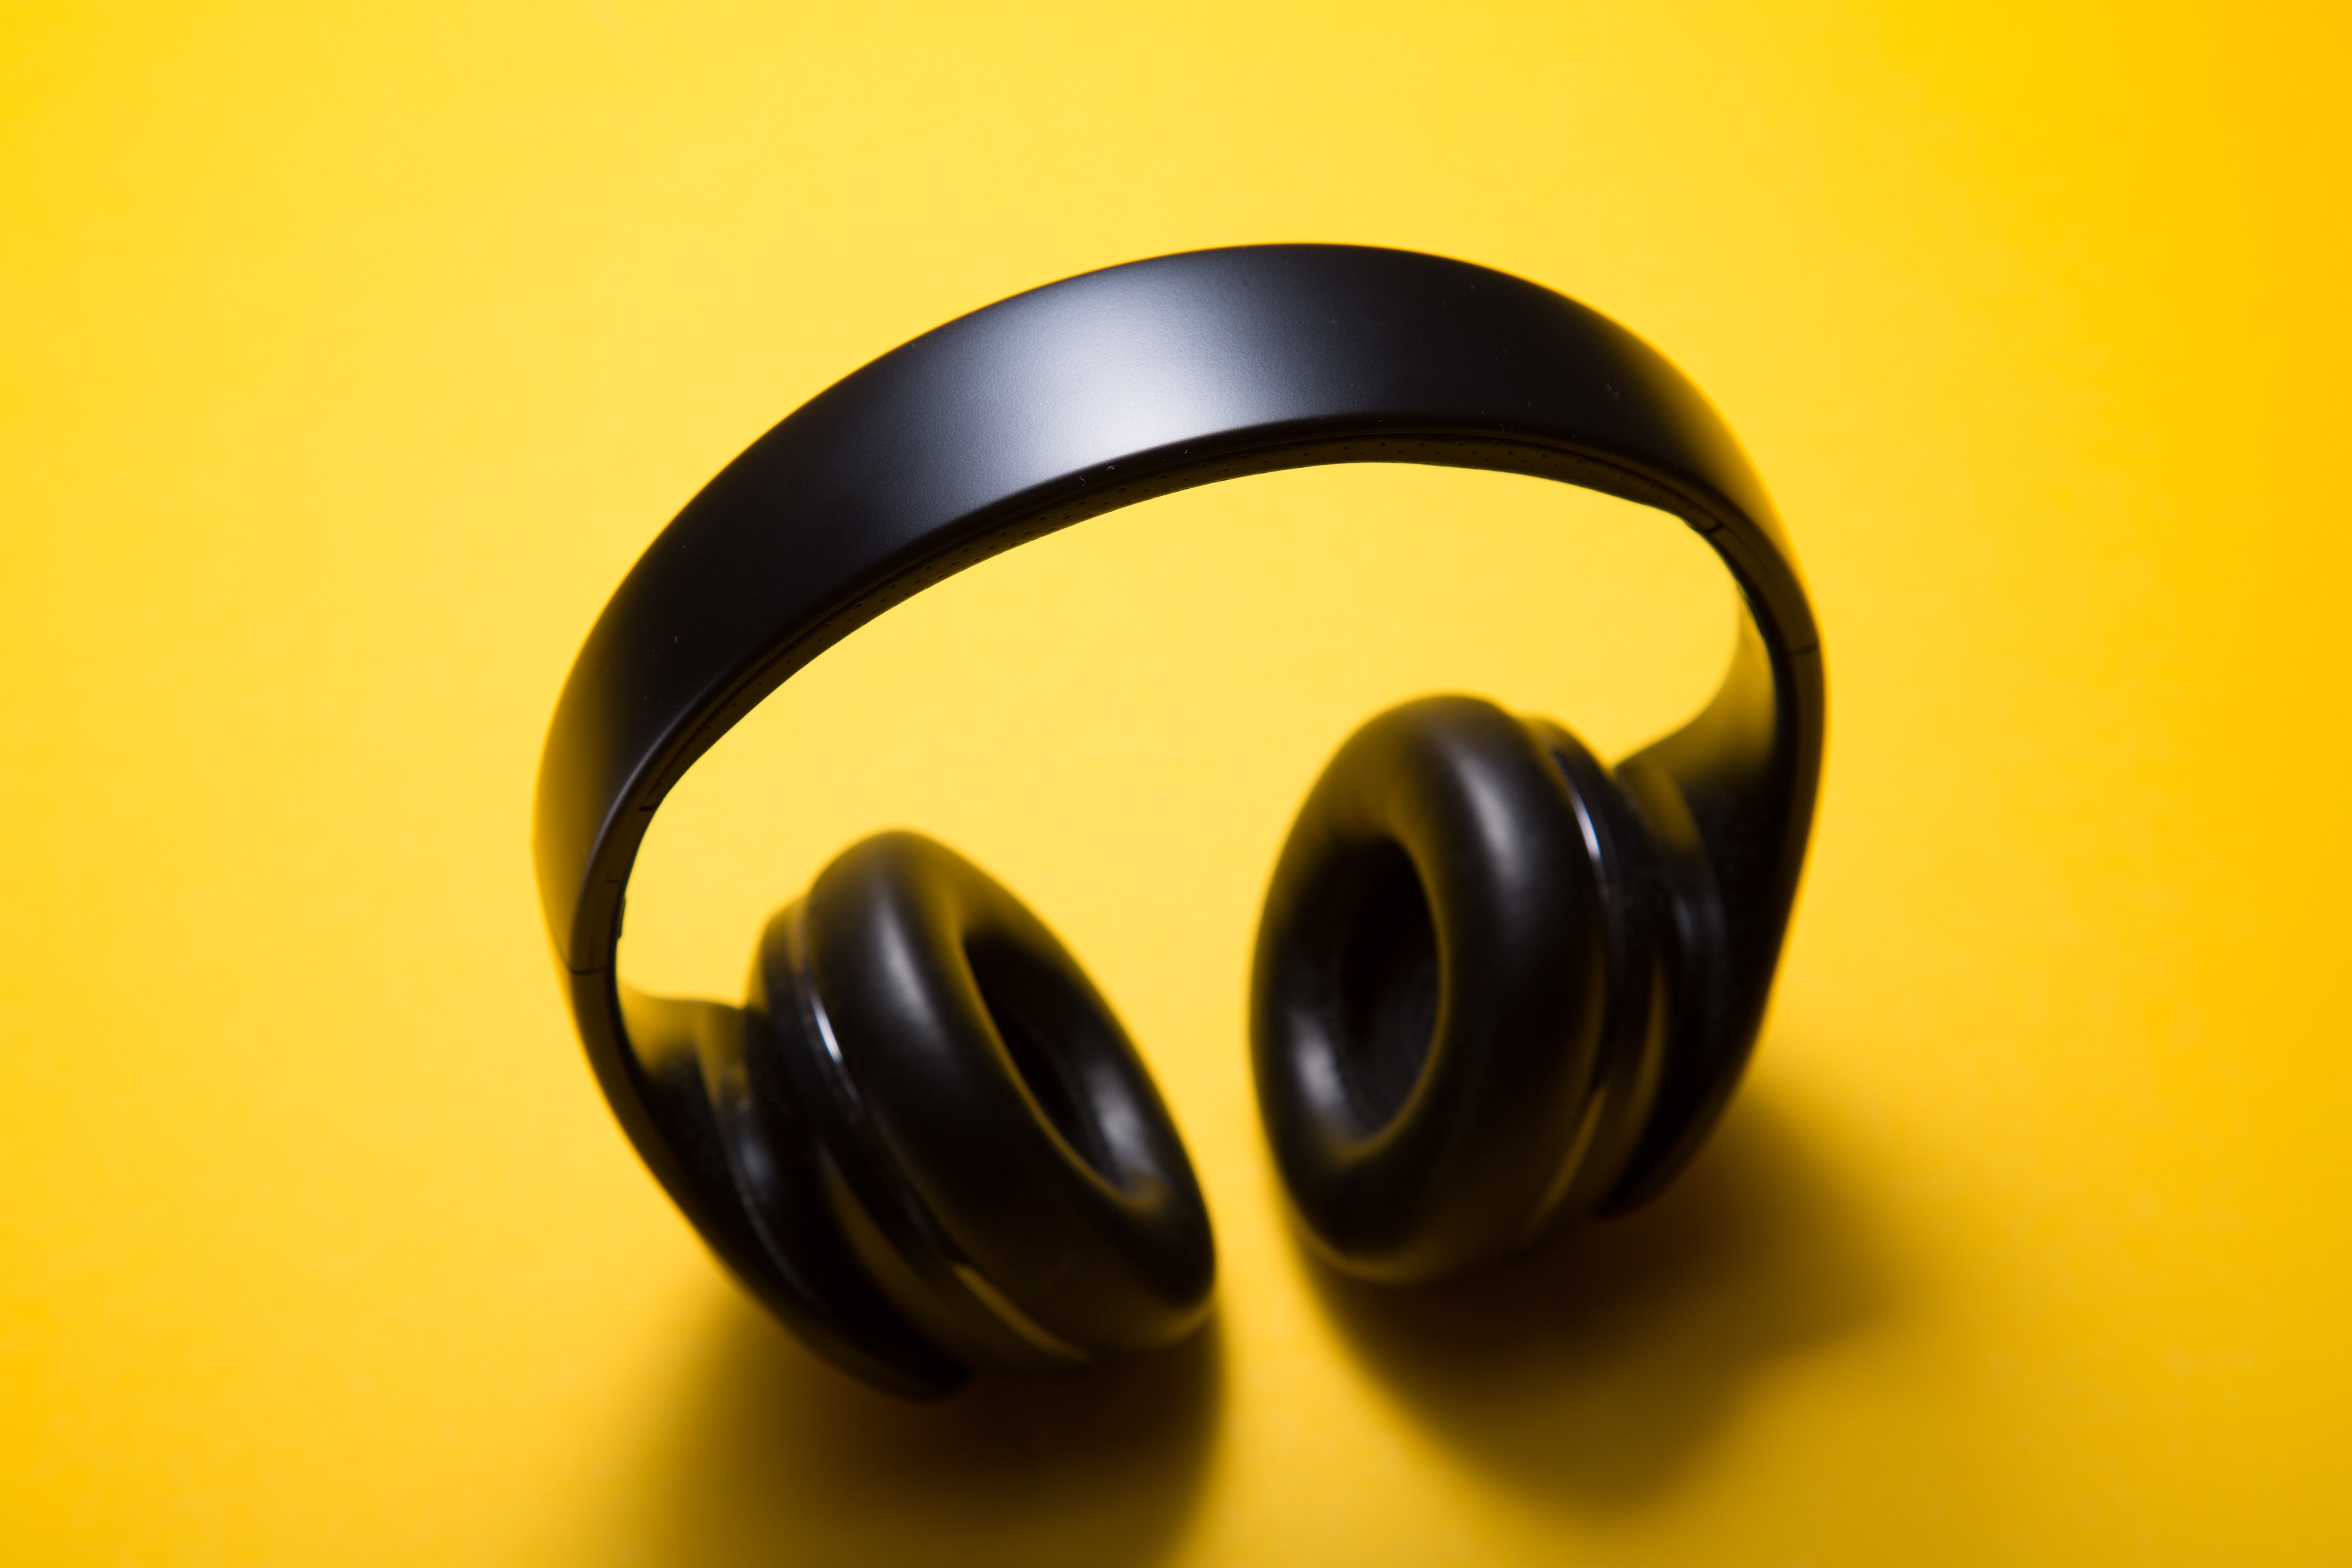 wireless headphones with yellow background